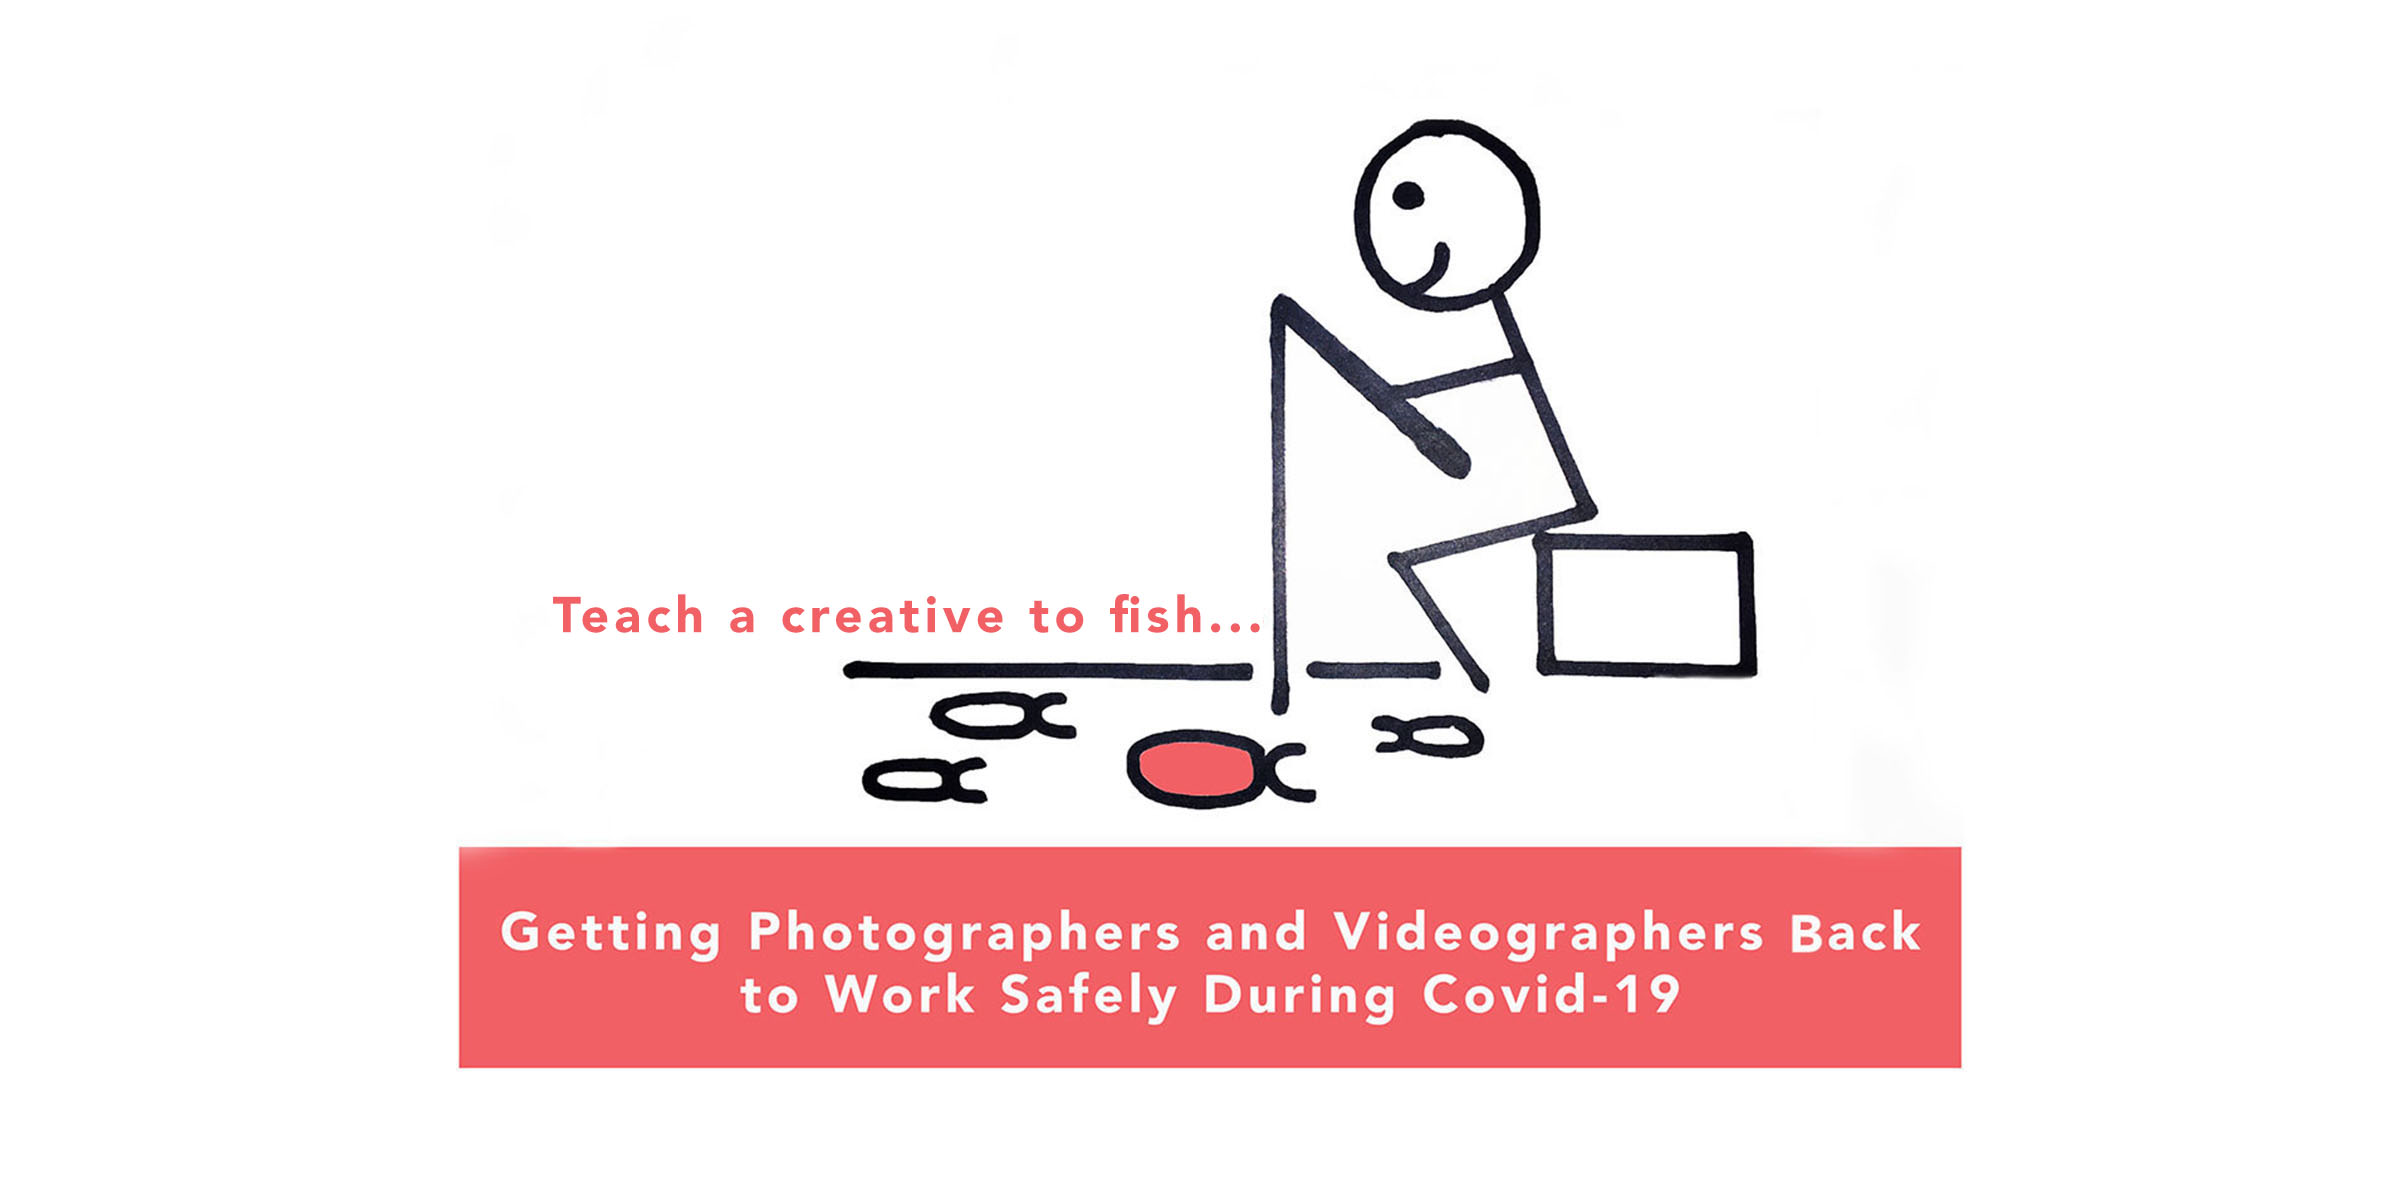 Teach a Creative to Fish...